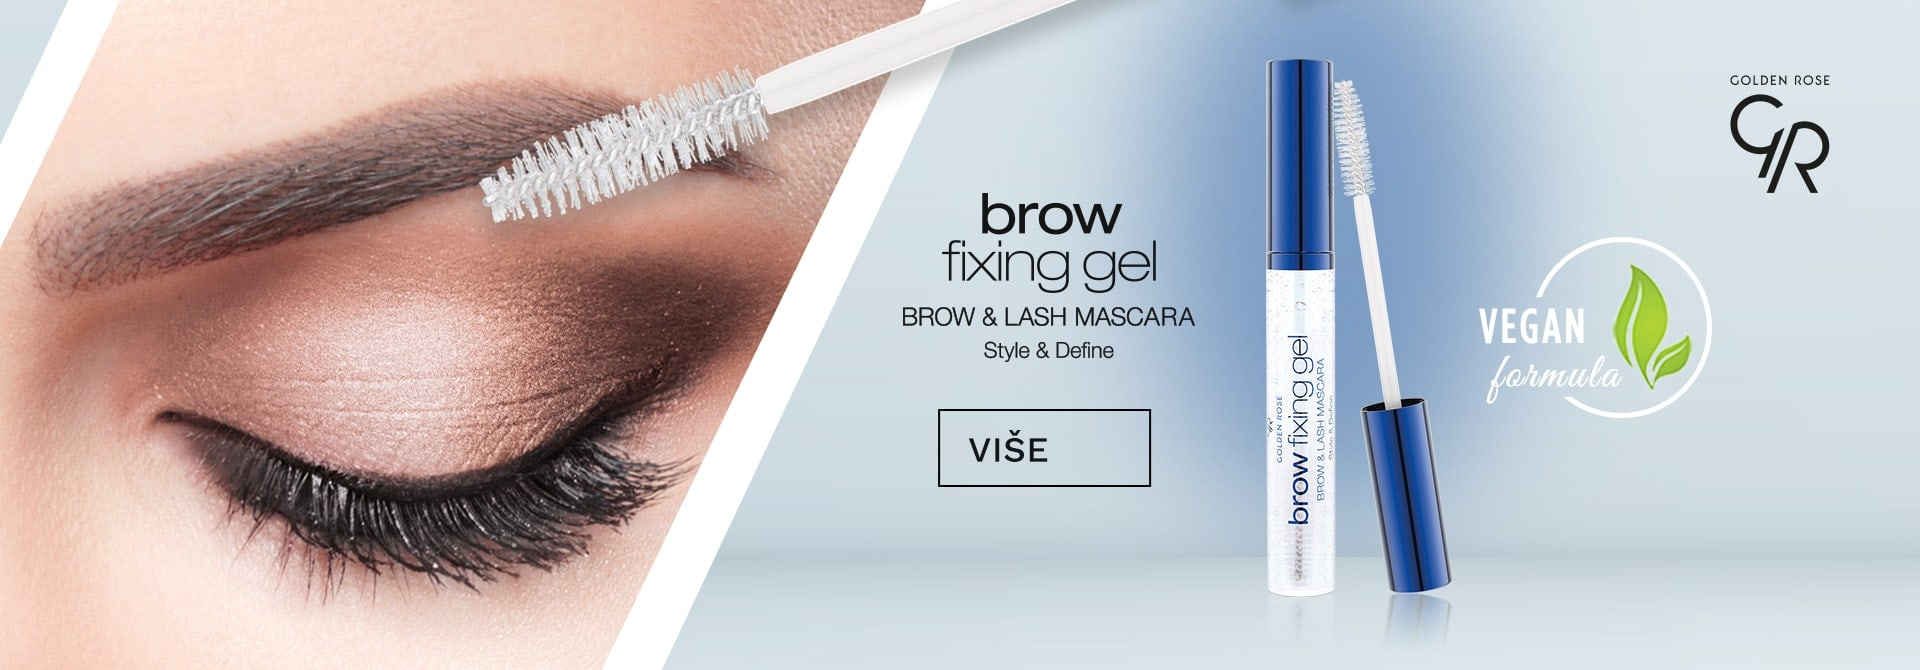 Golden Rose Brow Fixing Gel Brow Lash Mascara desktop